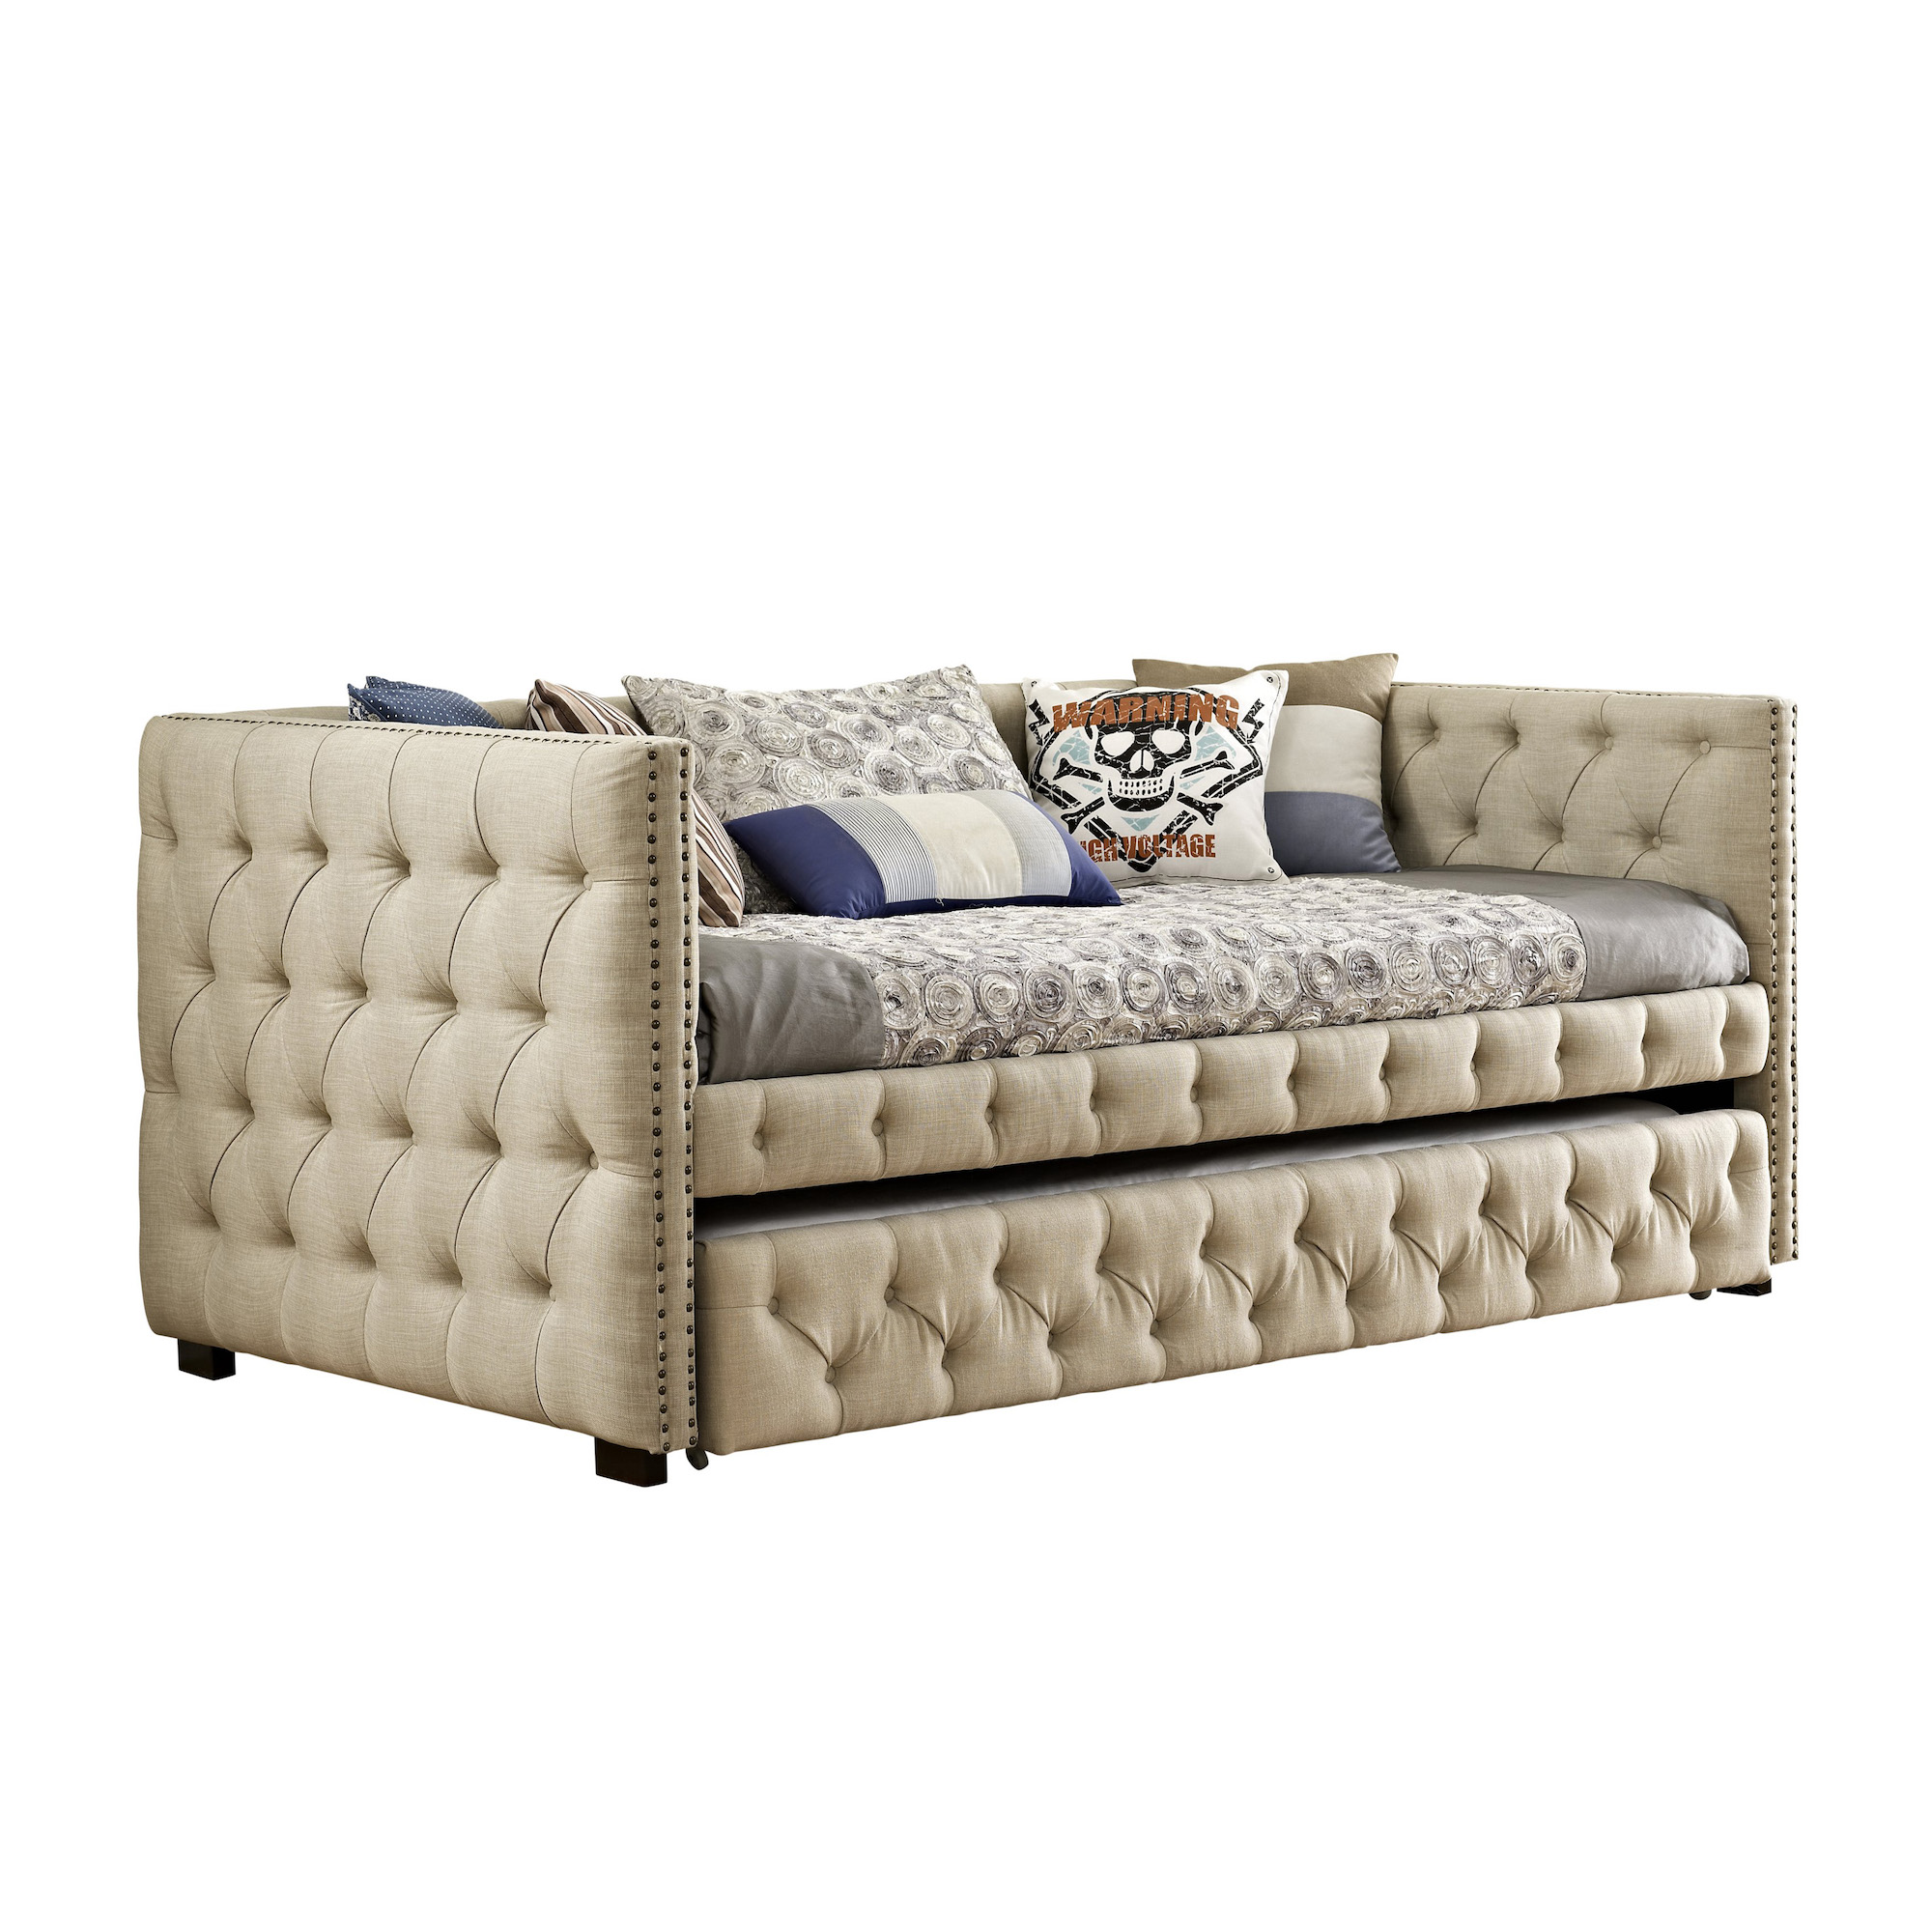 Janell Daybed - Natural